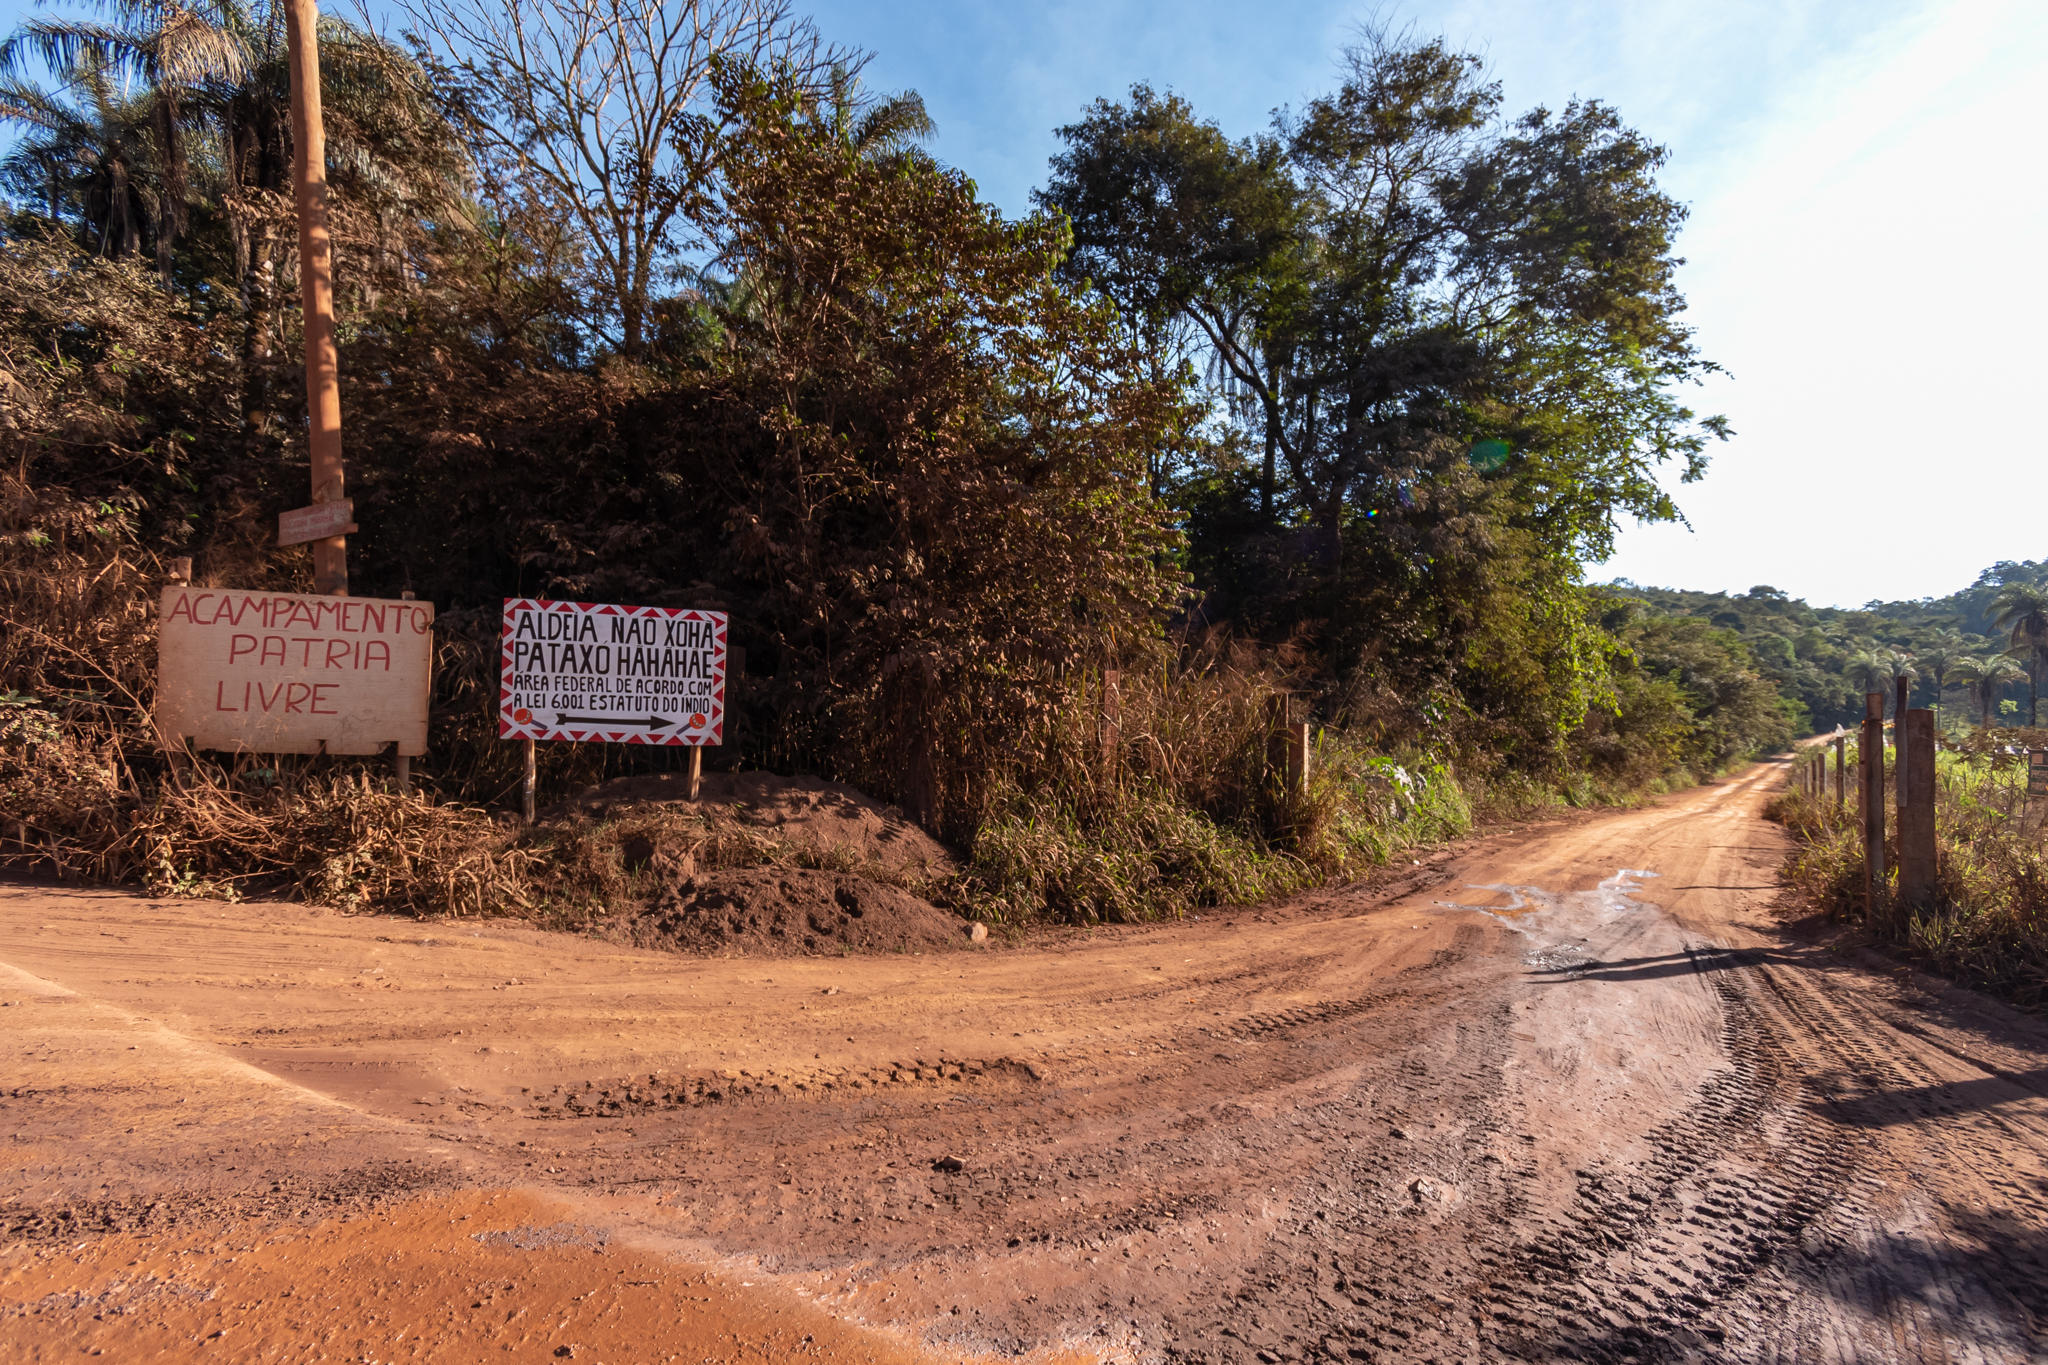 A dusty road leads to the Naô Xohã village, a community of families of Pataxó and Pataxó Ha-ha-hãe indigenous people. Image by Luiz Guilherme Fernandes for Mongabay